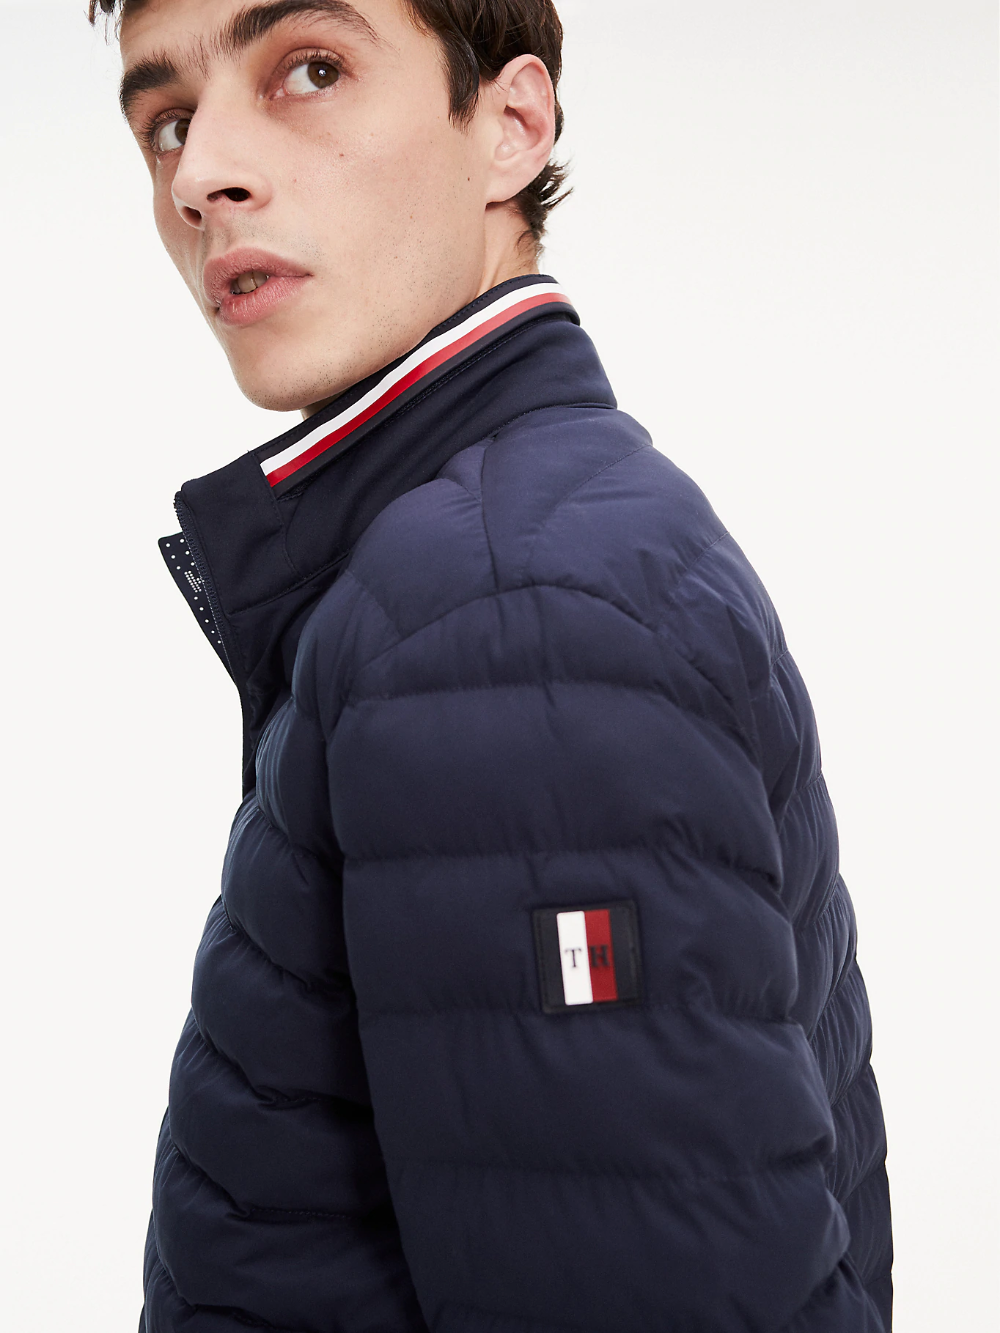 Padded Quilted Jacket Blue Tommy Hilfiger Jackets Tommy Hilfiger Quilted Jacket [ 1333 x 1000 Pixel ]